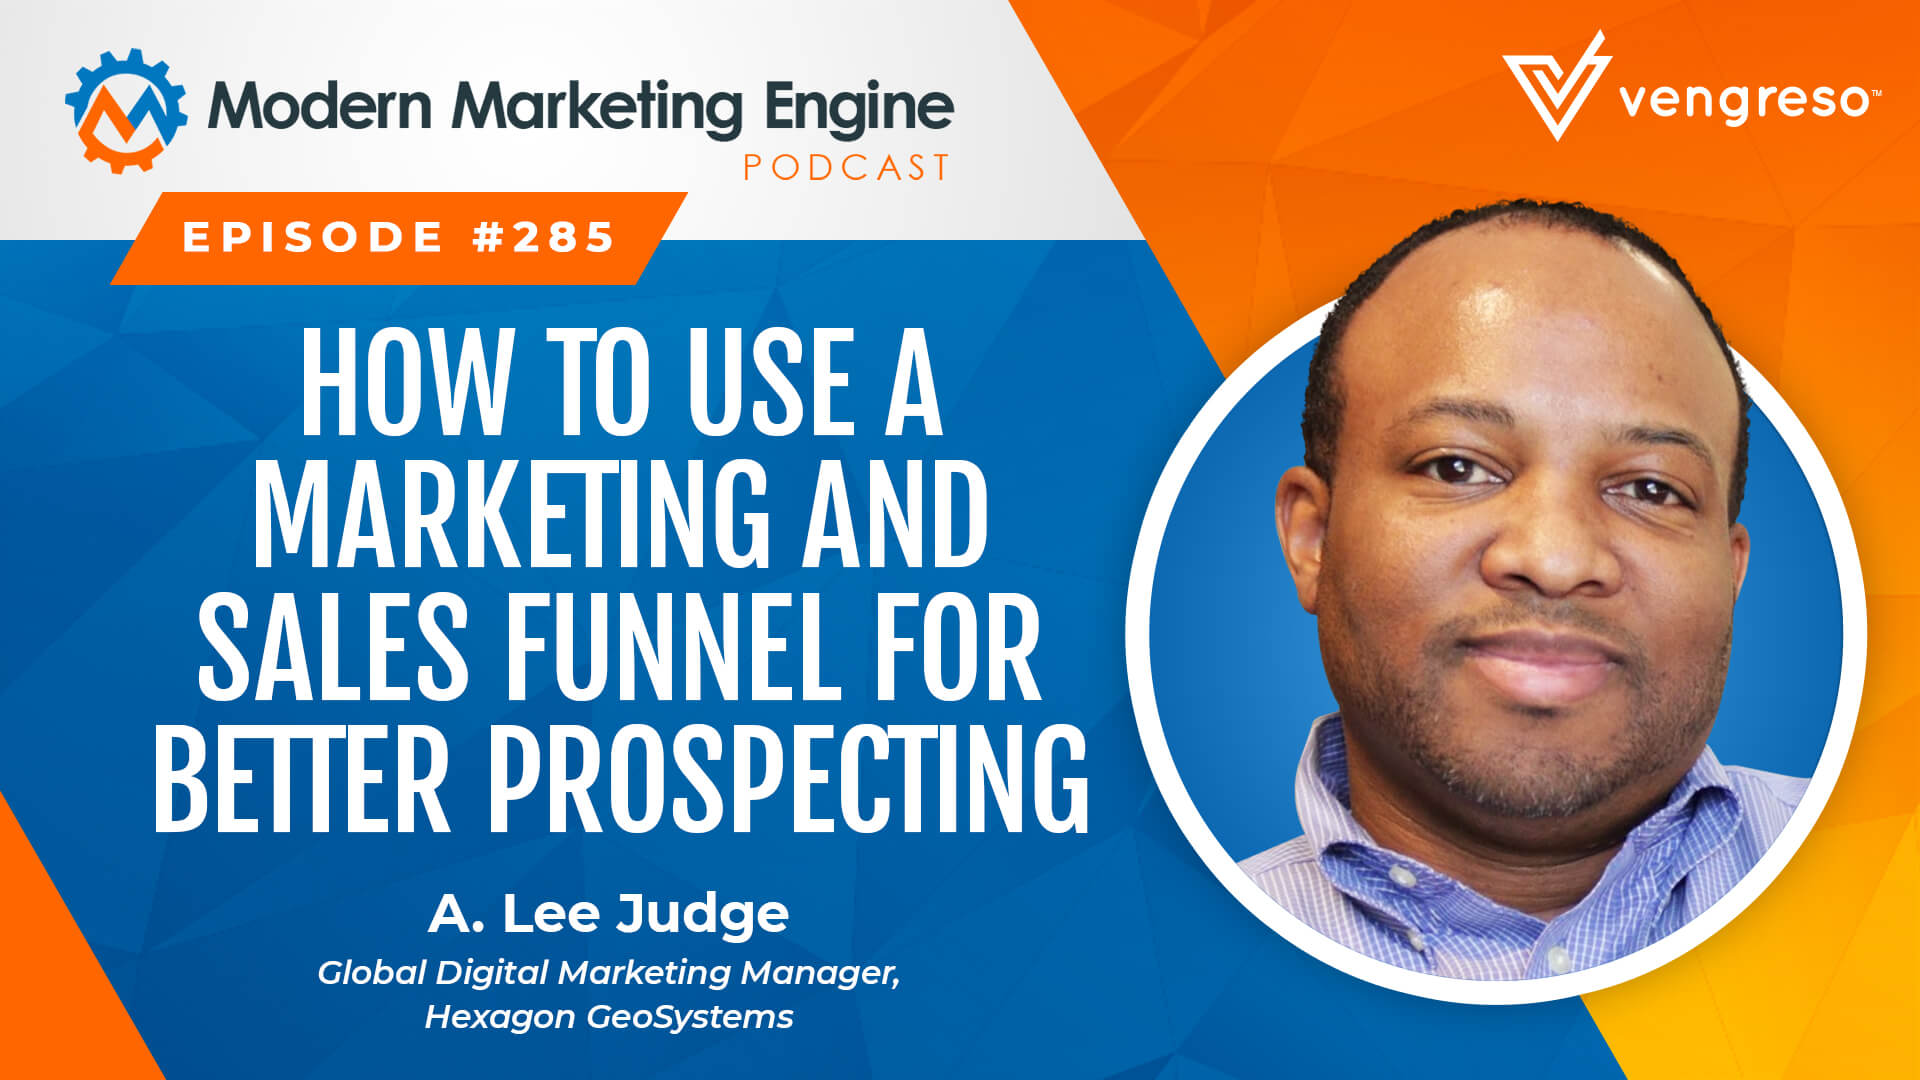 Marketing and Sales Funnel for Better Prospecting with A. Lee Judge